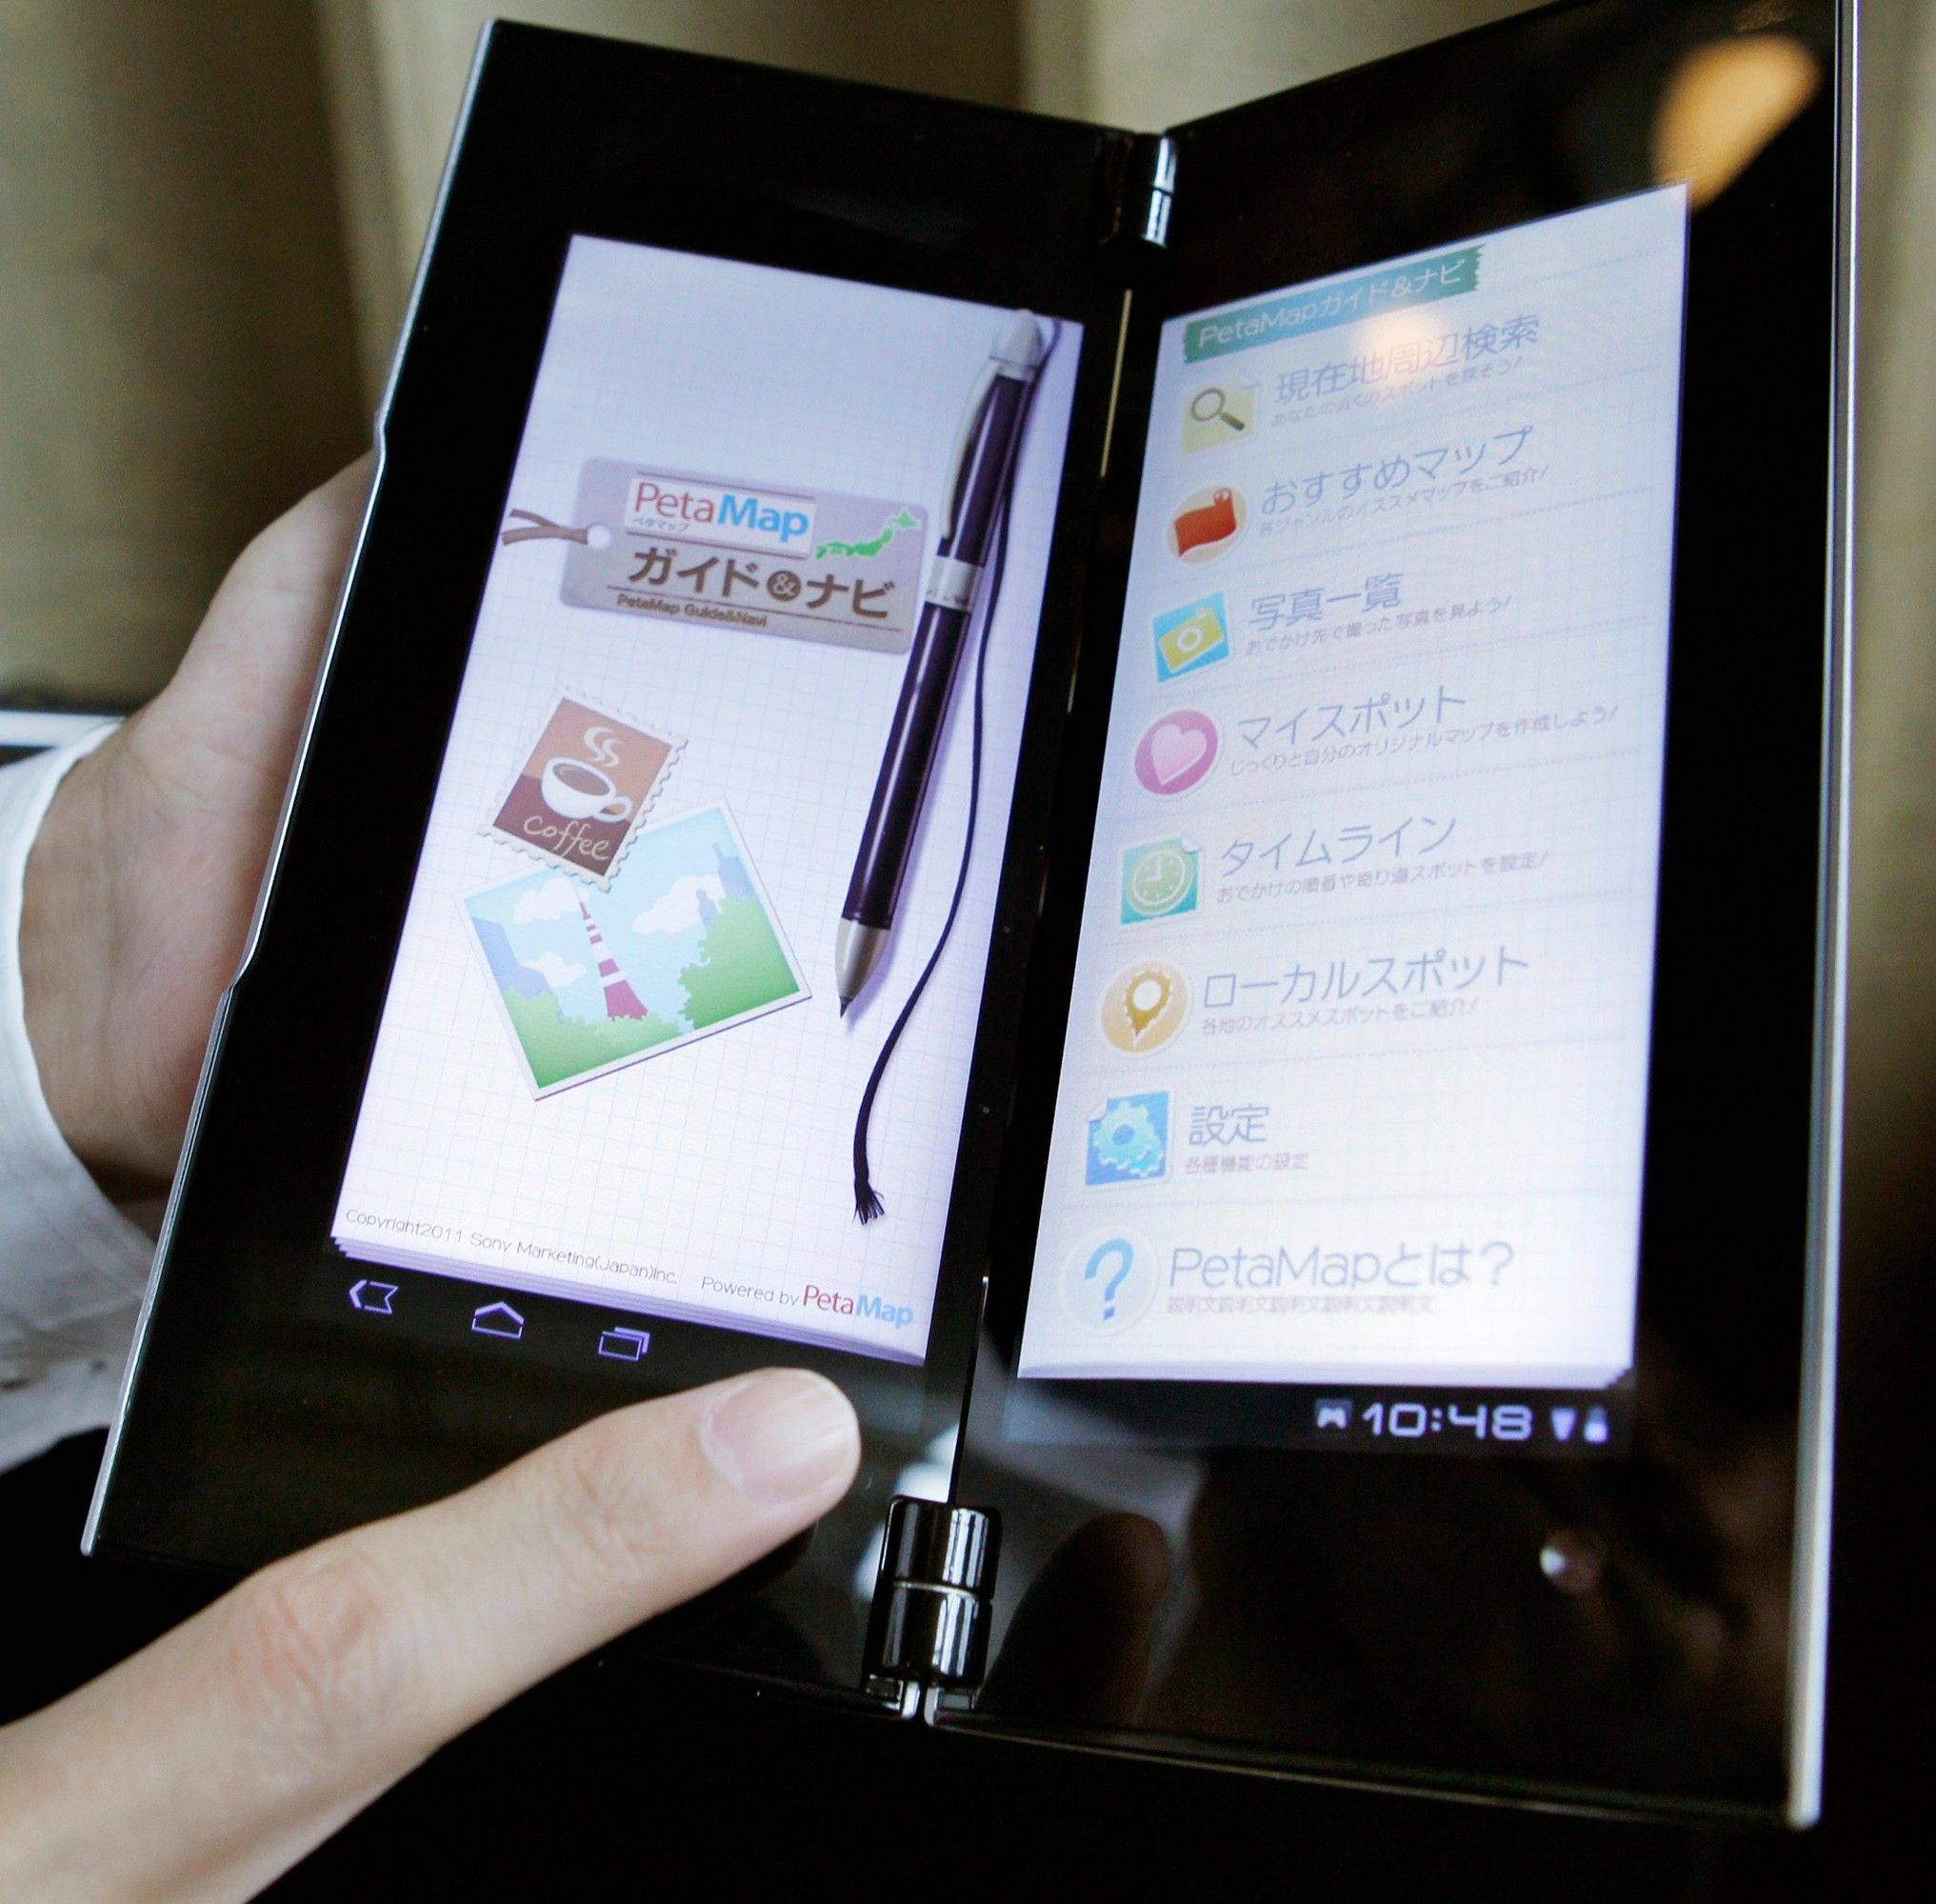 A man demonstrates Sony's new tablet computer Tablet P during a launch event in Tokyo, Thursday. The Tablet P opens like a book to reveal two screens.